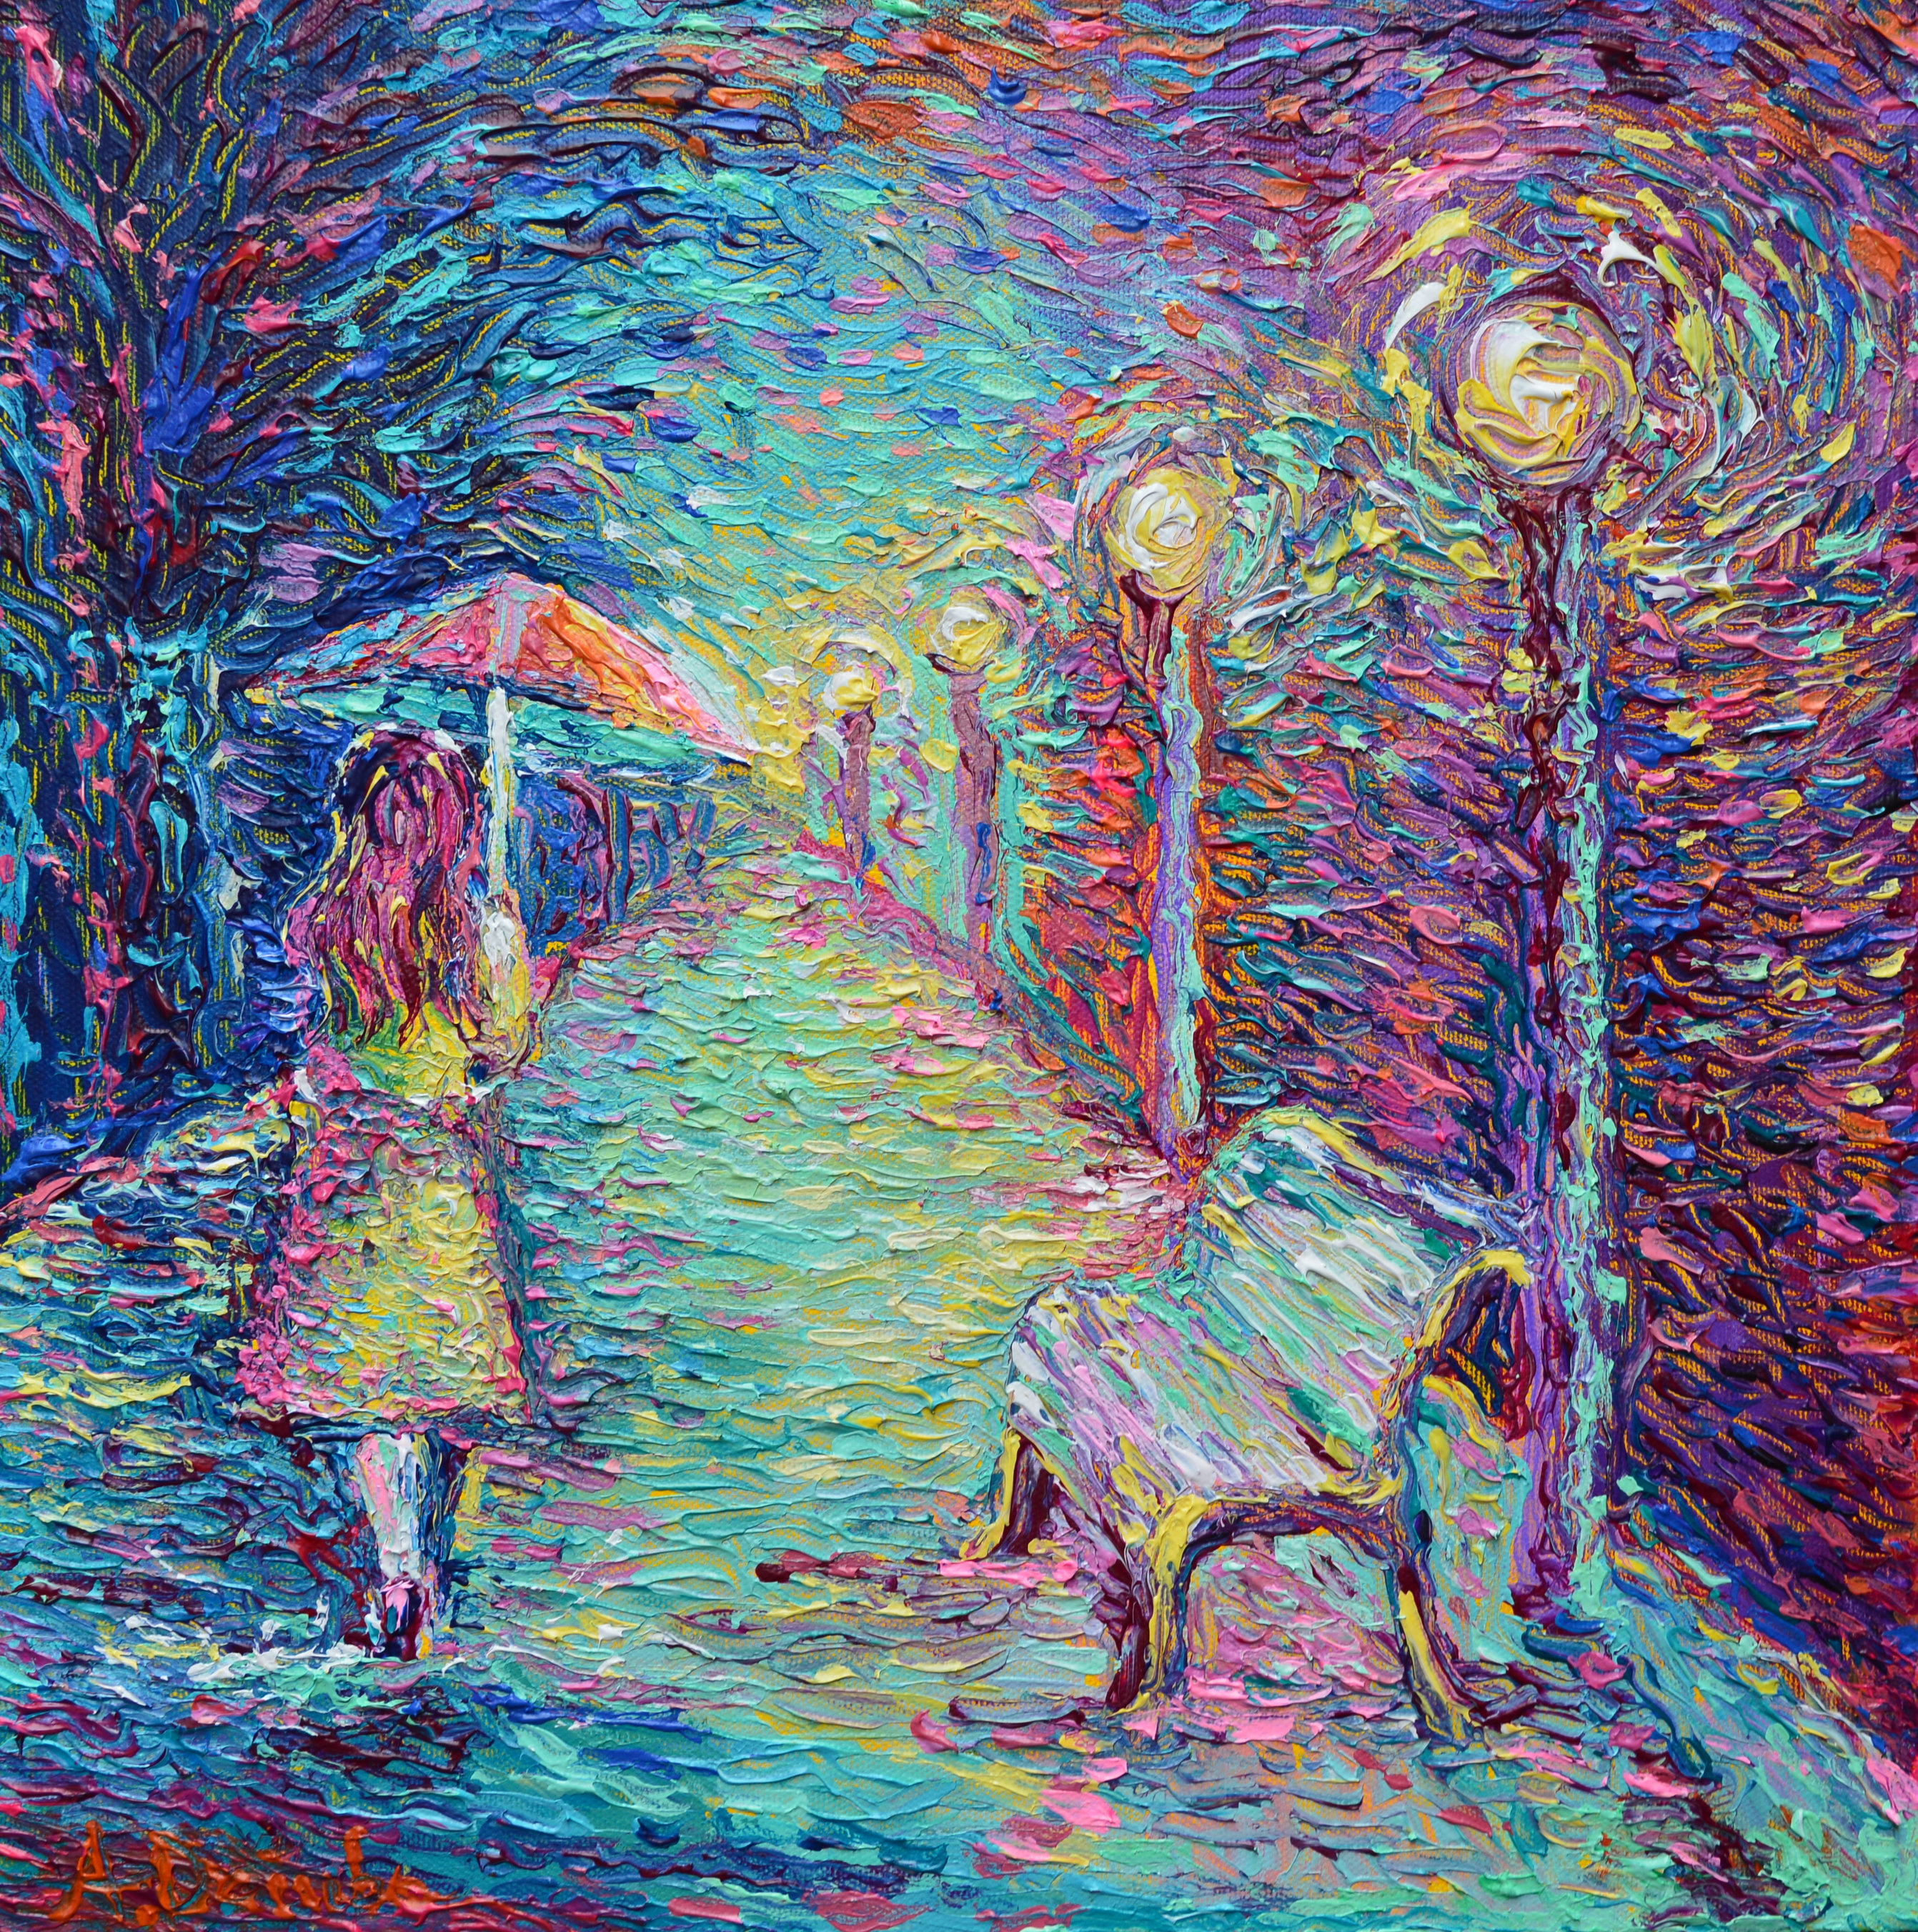 Girl with Pink Umbrella, original small modern palette knife acrylic figurative urban city landscape painting on canvas by Adriana Dziuba